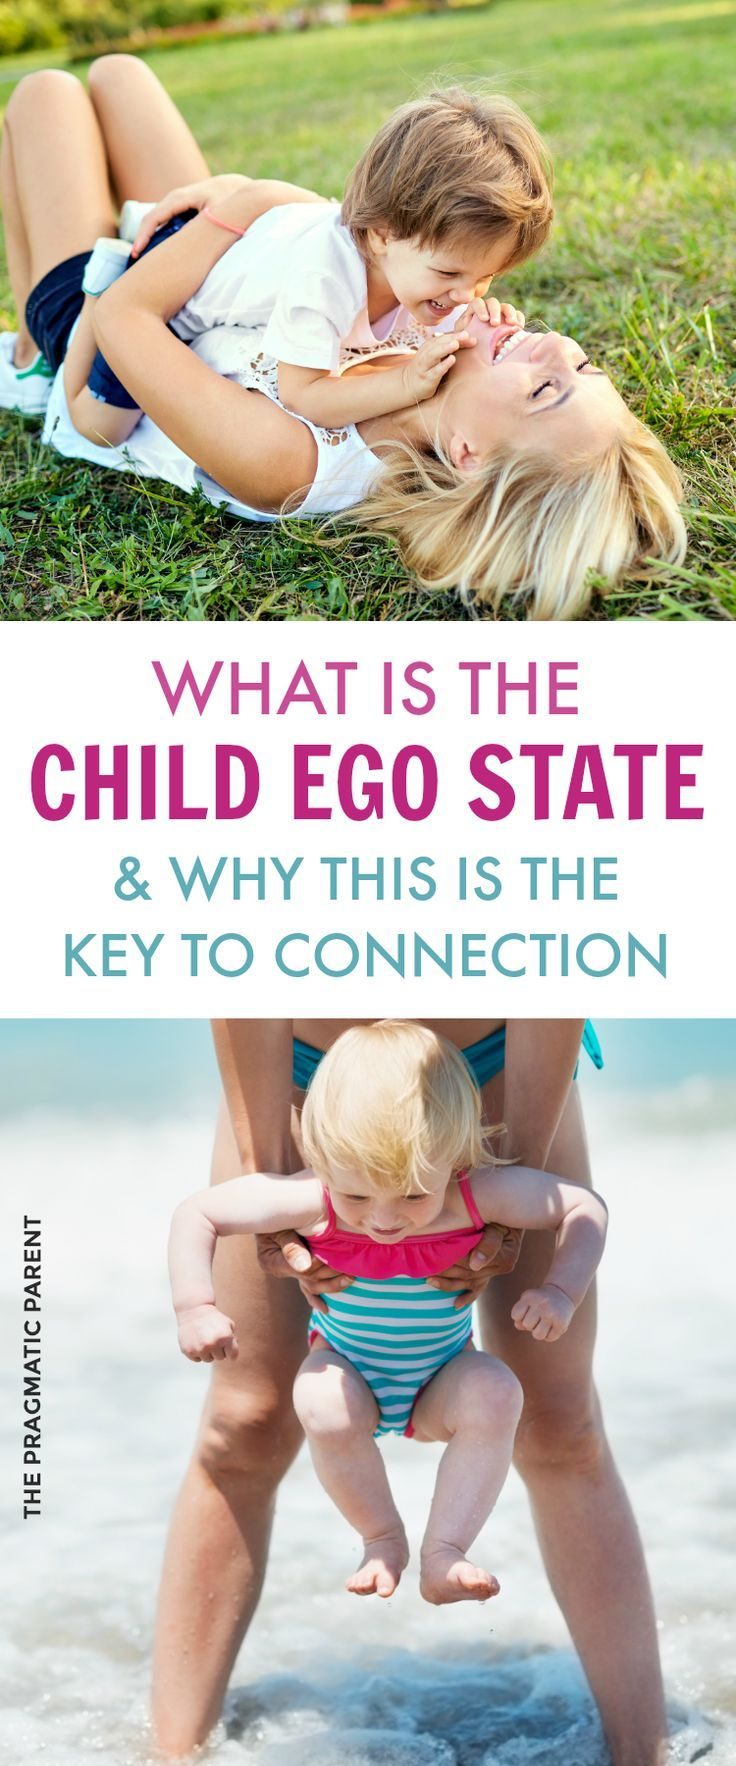 Do you use this Positive Parenting Strategy? Do you know the key to positive connection with your child can found in the Child Ego State? Positive parenting tip to minimize power struggles and bring more meaningful connection to your parent-child relationship. Connect with your kids using the Child Ego State mindset and less Adult Ego and Parent Ego State of Personality. #positiveparenting #parentingforconnection #parentingtips #positivediscipline #toddlerpositivediscipline